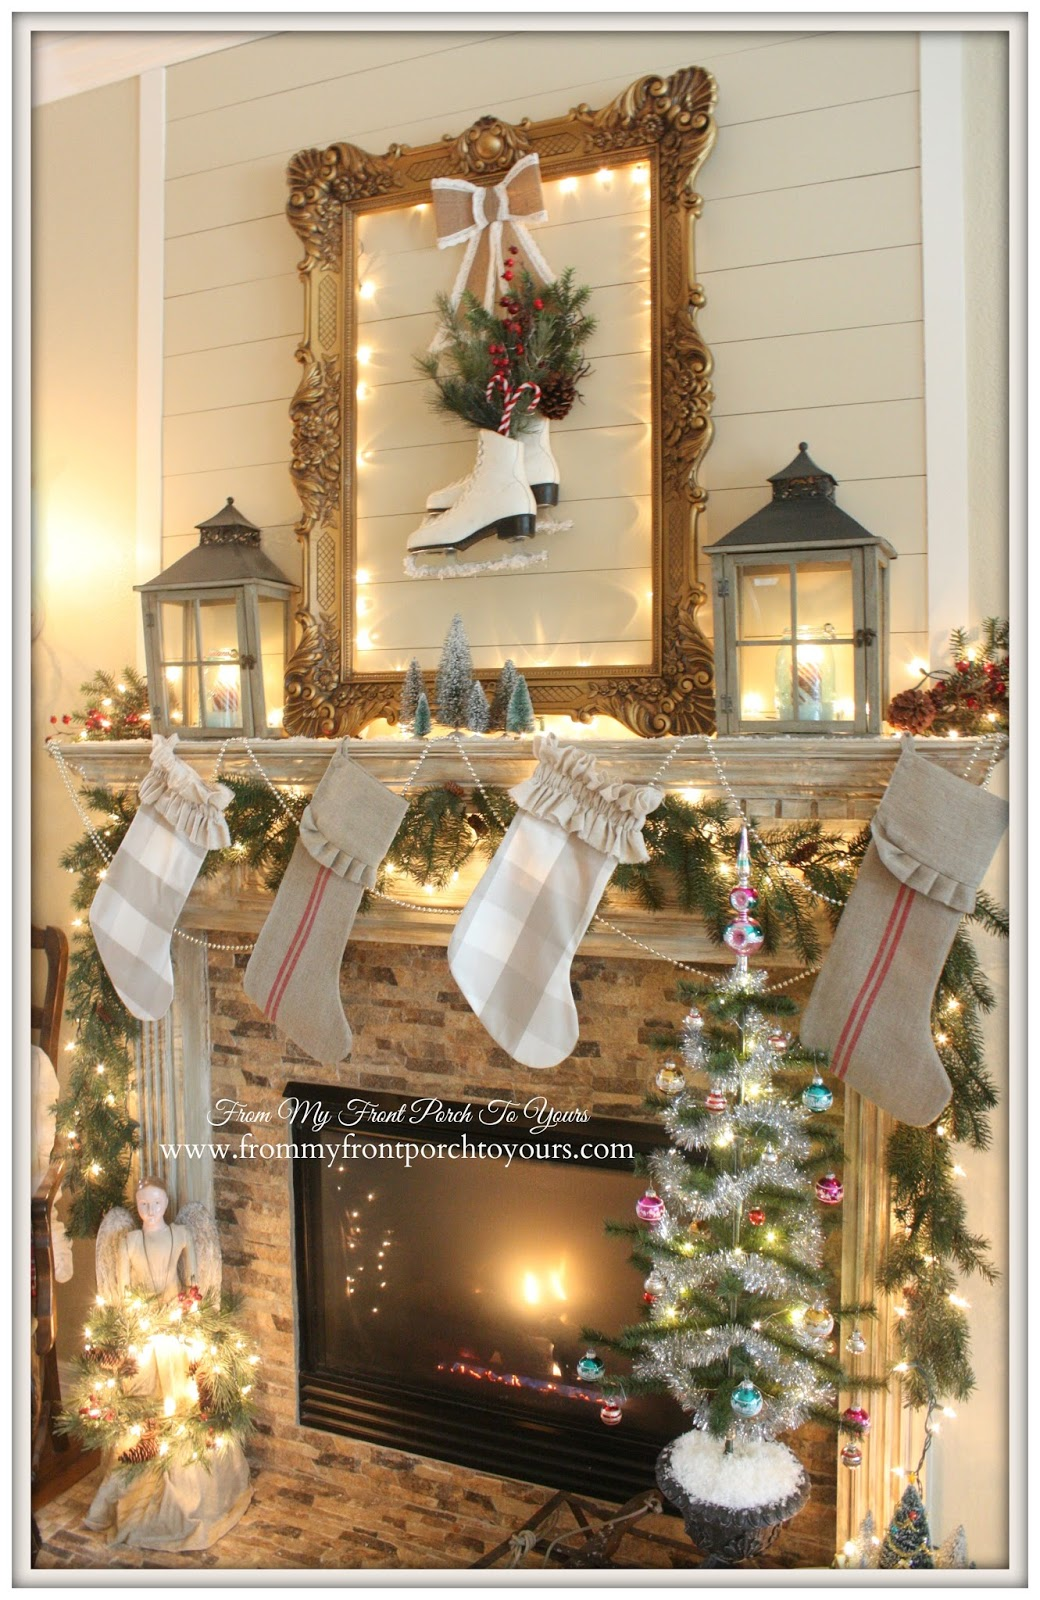 French Farmhouse Vintage Christmas Mantel 2014-Ice Skates-Vinatge- From My Front Porch To Yours